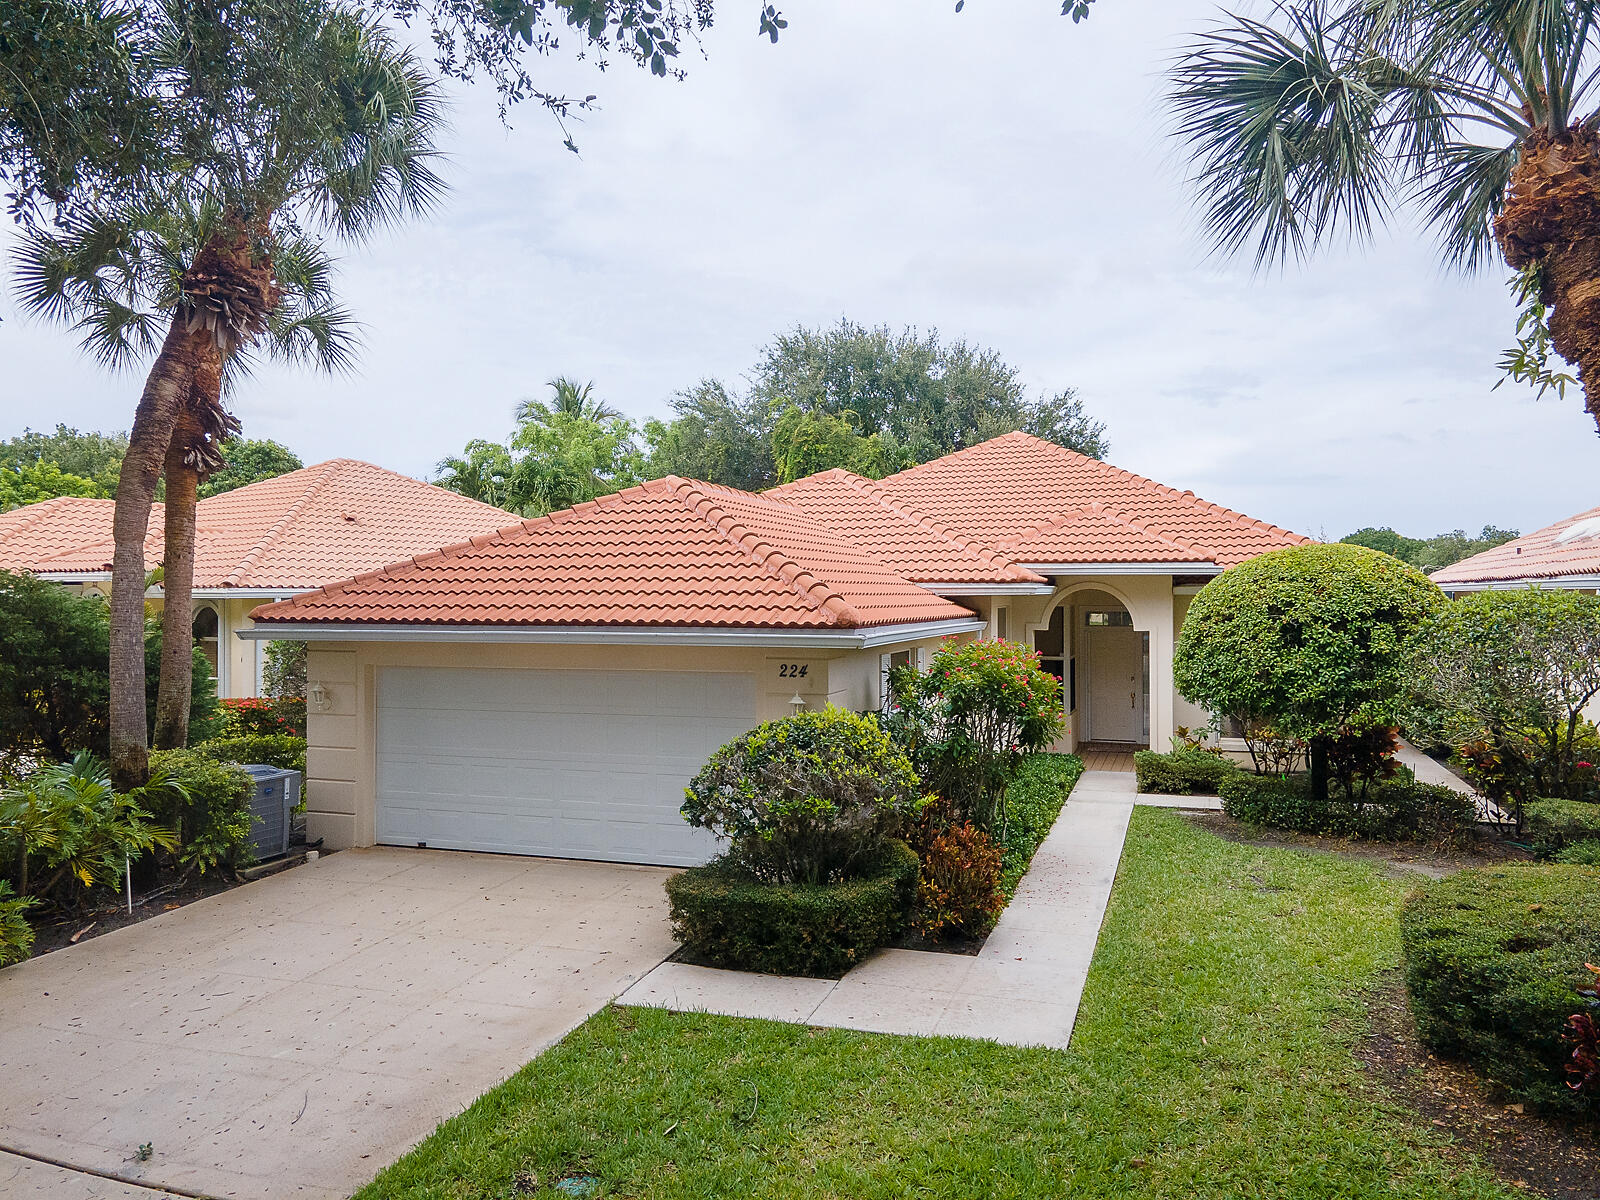 Home for sale in Oaks East Palm Beach Gardens Florida